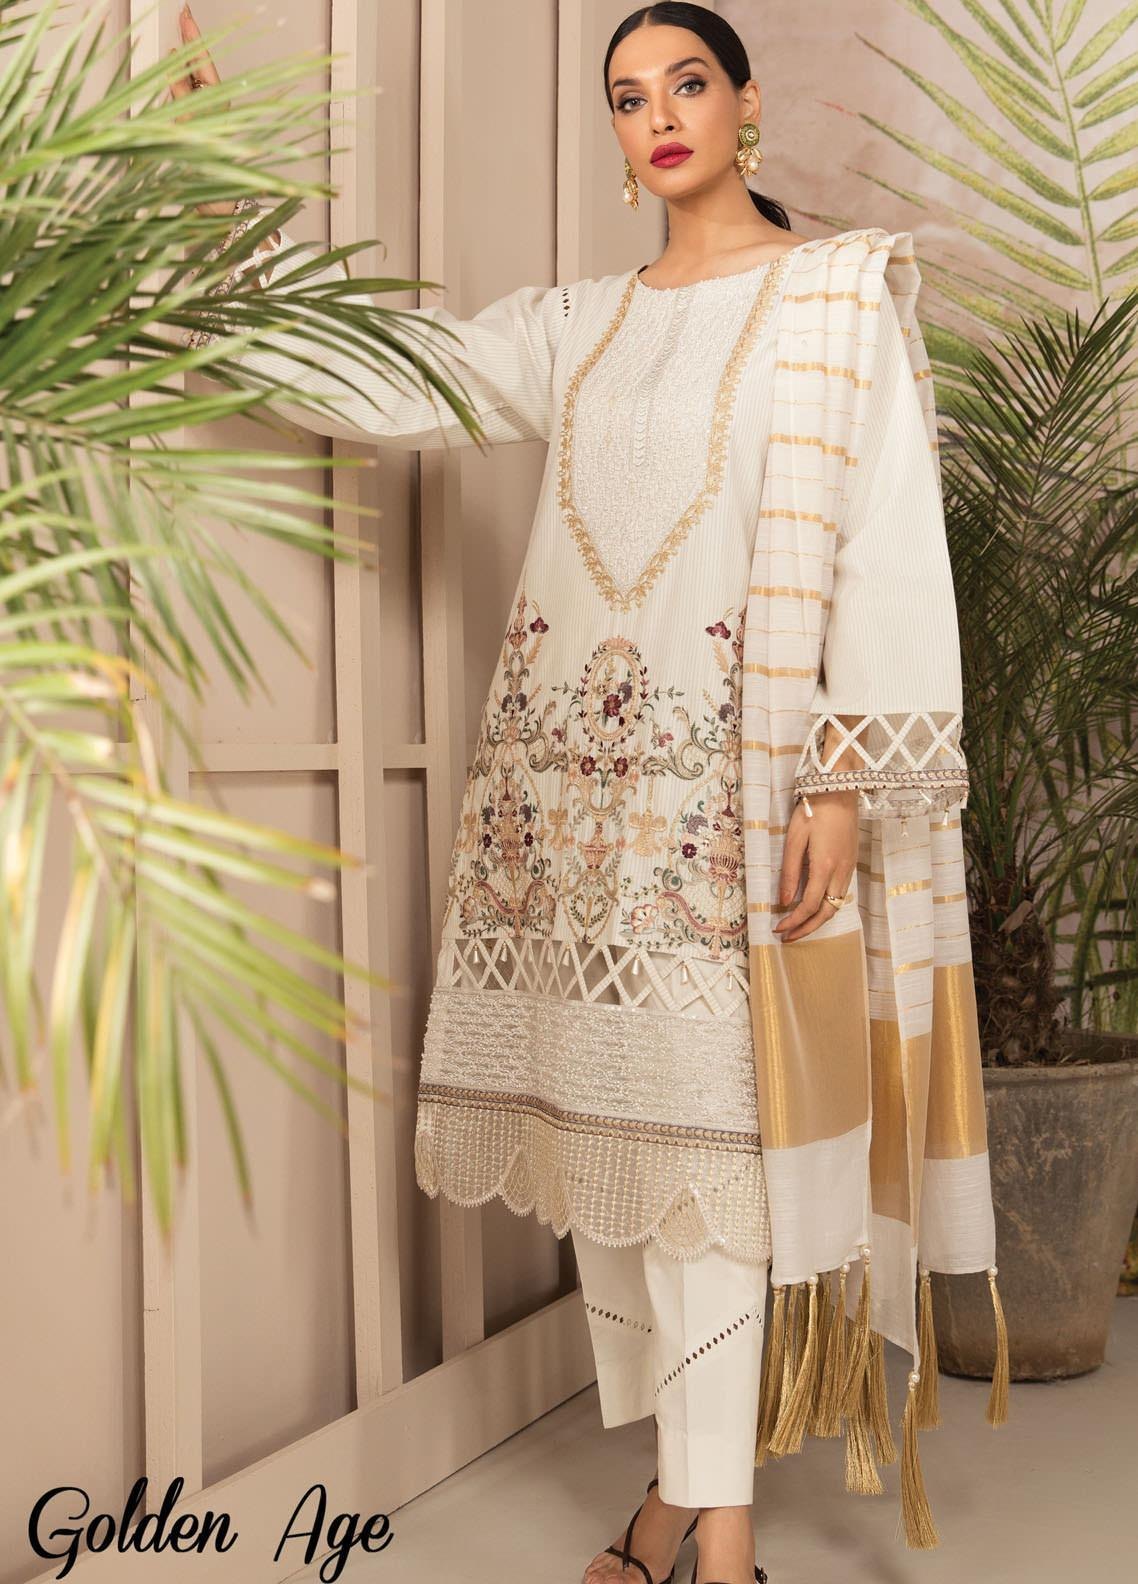 Anamta by Mahwish Ishtiaq Embroidered Lawn Suits Unstitched 3 Piece ANT21L 09-Golden Age - Luxury Collection